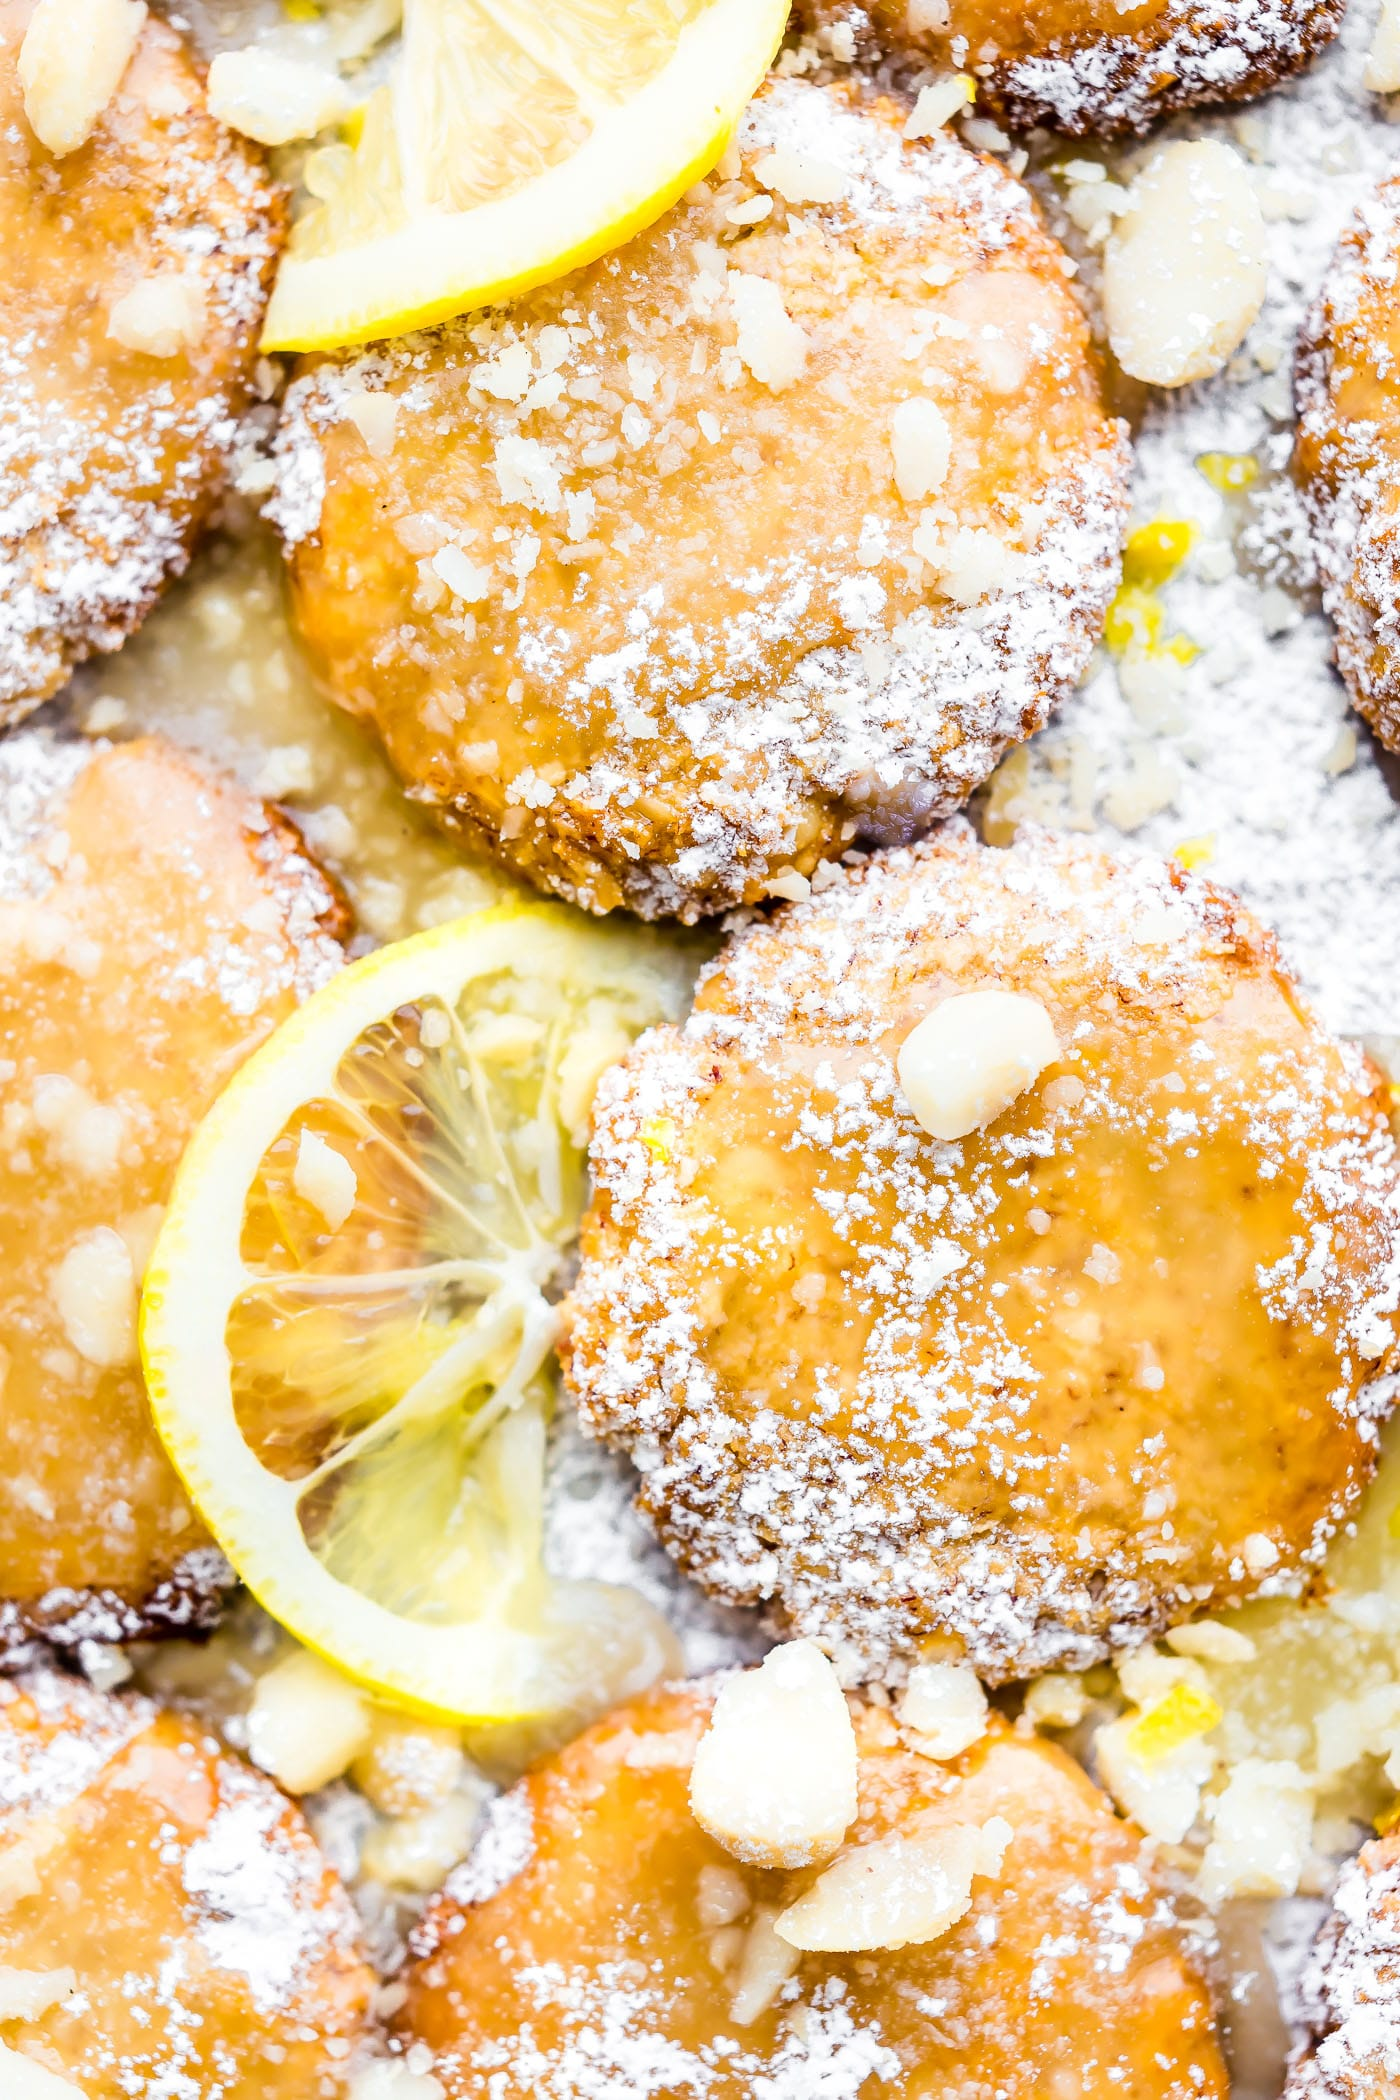 These Zesty Lemon Macadamia Nut Cookies have a wonderful flavor combination of coconut, lemon, and buttery macadamia nut! Chewy in the middle. Crispy outside and topped with a simple lemon glaze! So good and easy to make! Paleo and Vegan Friendly.